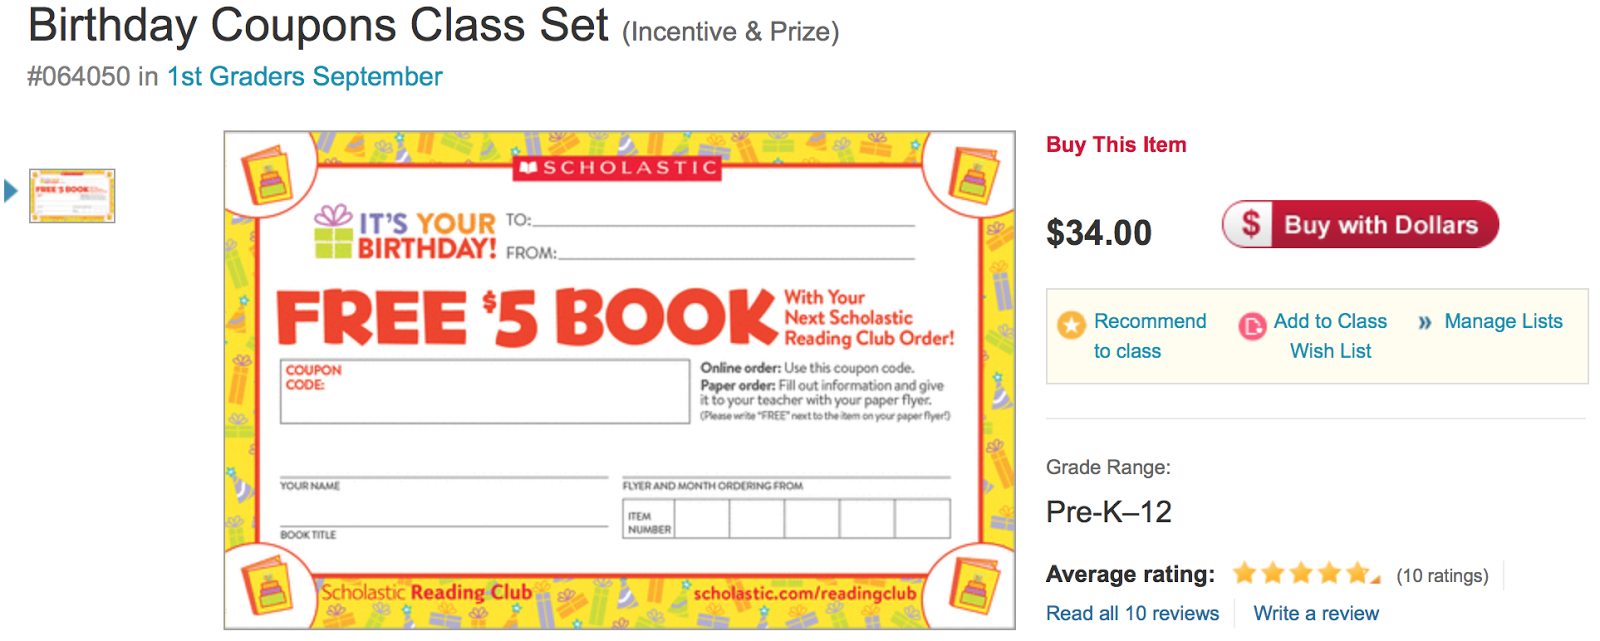 Shopping Tips for Scholastic Store: 1. Teachers and administrators ordering in bulk can score a bonus discount by submitting the designated form by mail, fax or email. 2. The Scholastic Reading Club gives teachers the opportunity to save on classroom essentials by collecting points for purchases. The program is entirely free to join. 3.